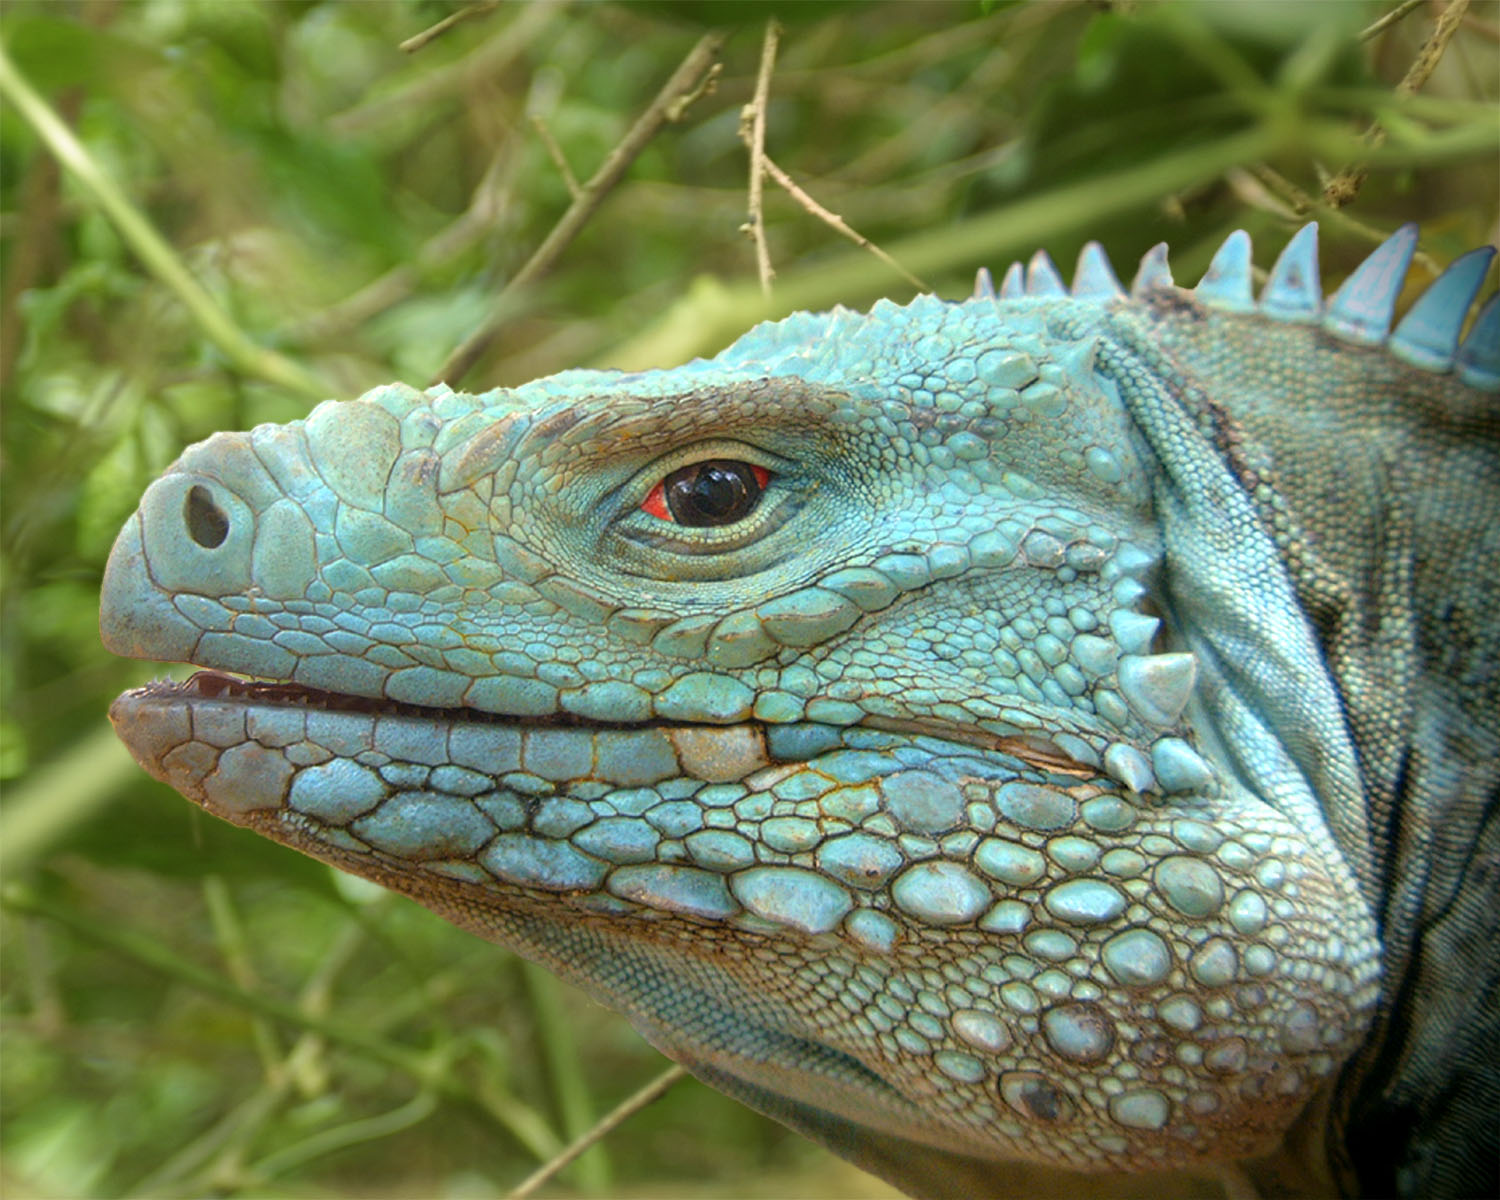 Finally The Colliers Wilderness Reserve Another Sanctuary For Blues Has A Healthy Population Of Blue Iguanas Photo Credit Fred Burton